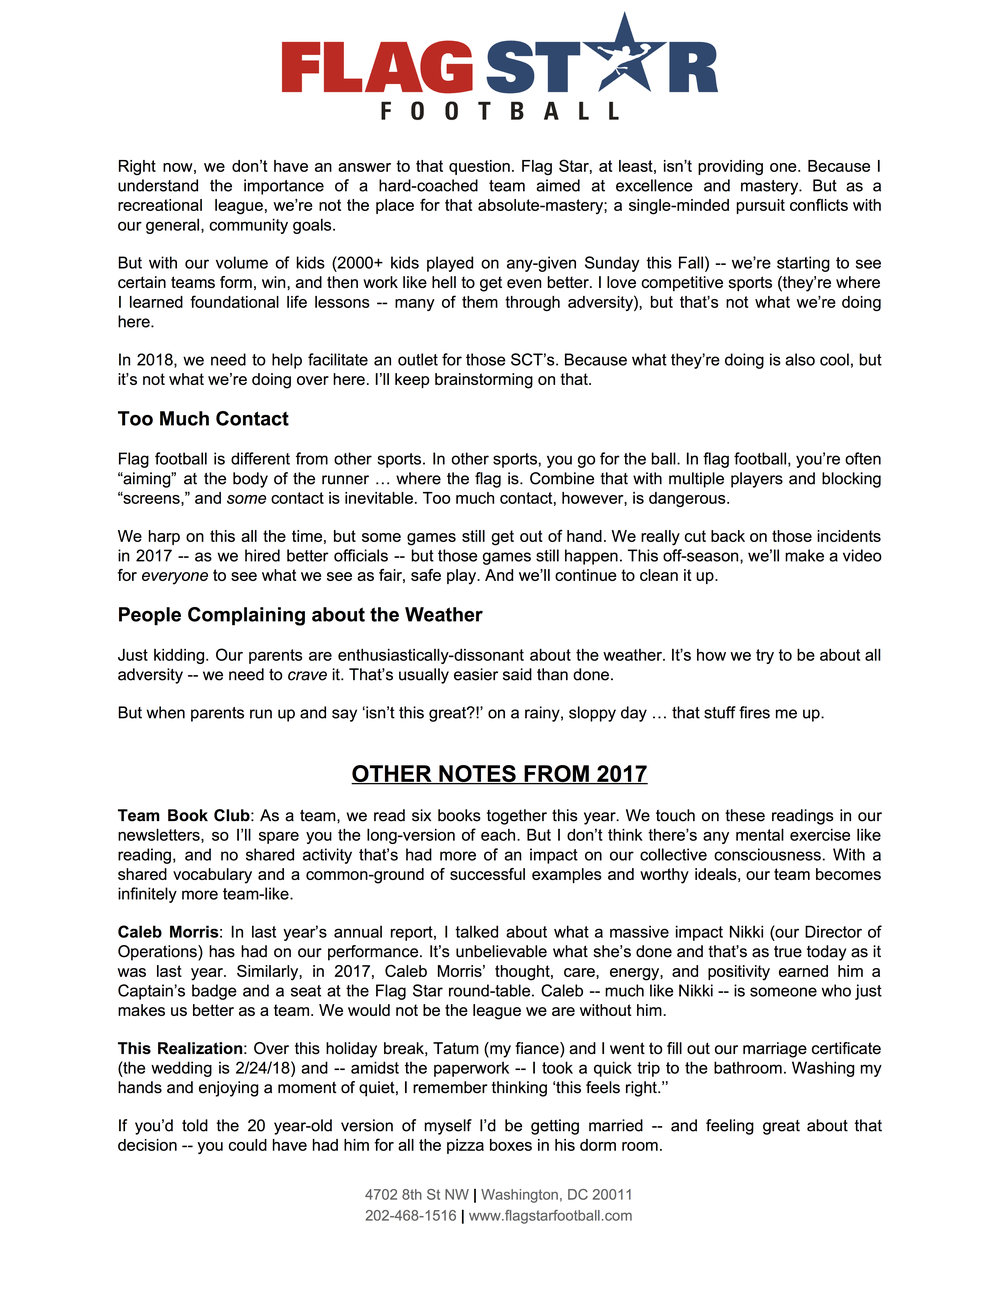 2017 Letter to Shareholders p6.jpg